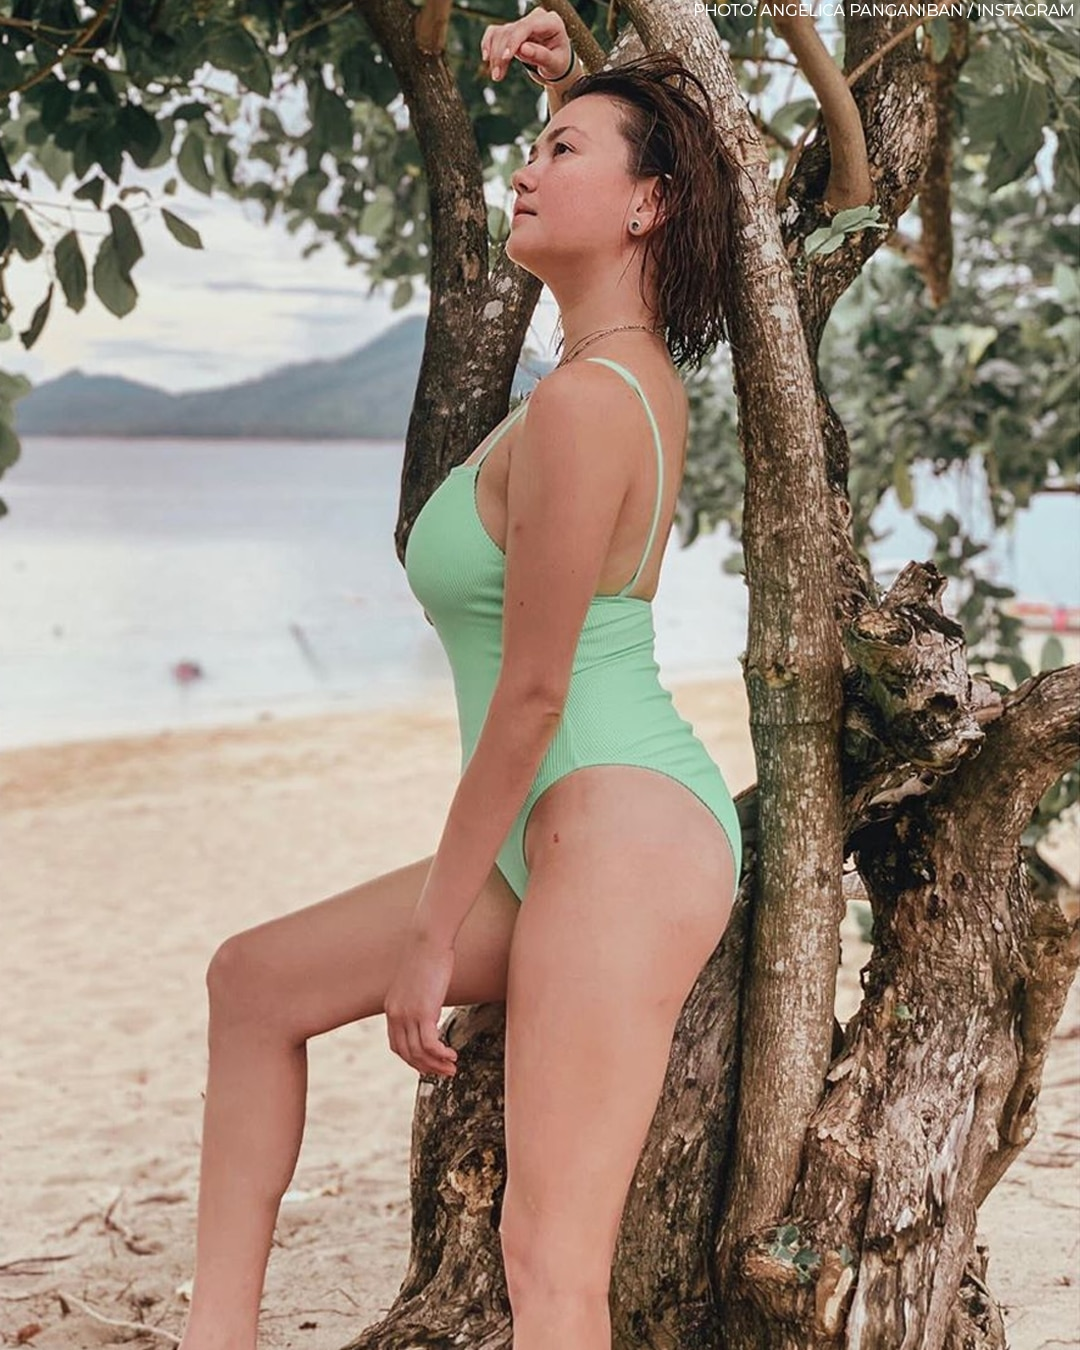 Angelica Panganiban's most fearless moments